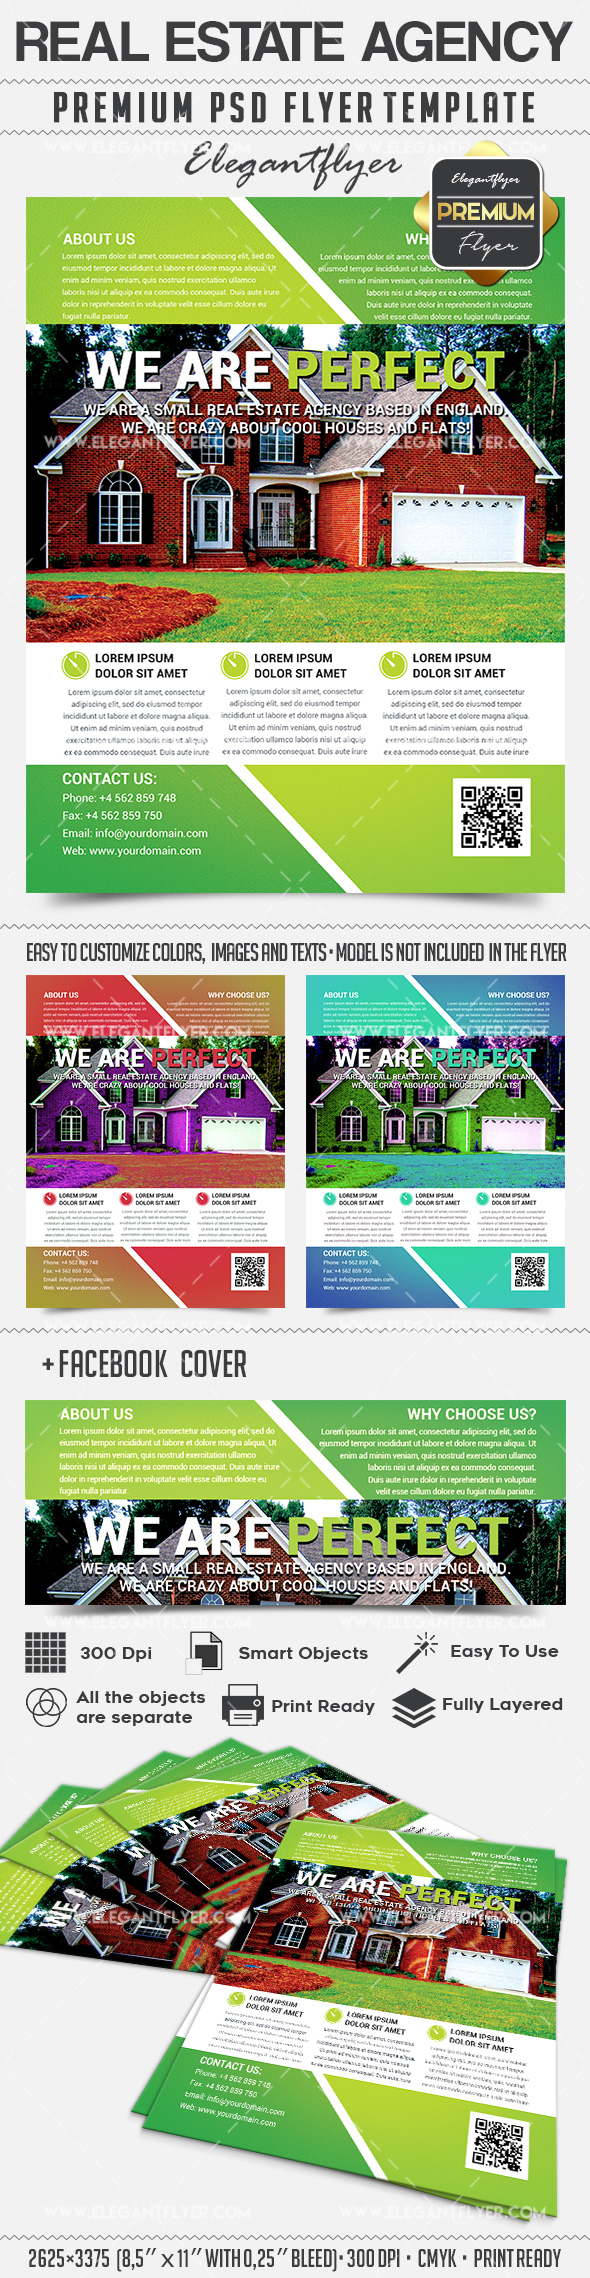 real estate agent brochure templates - real estate agency flyer psd template by elegantflyer